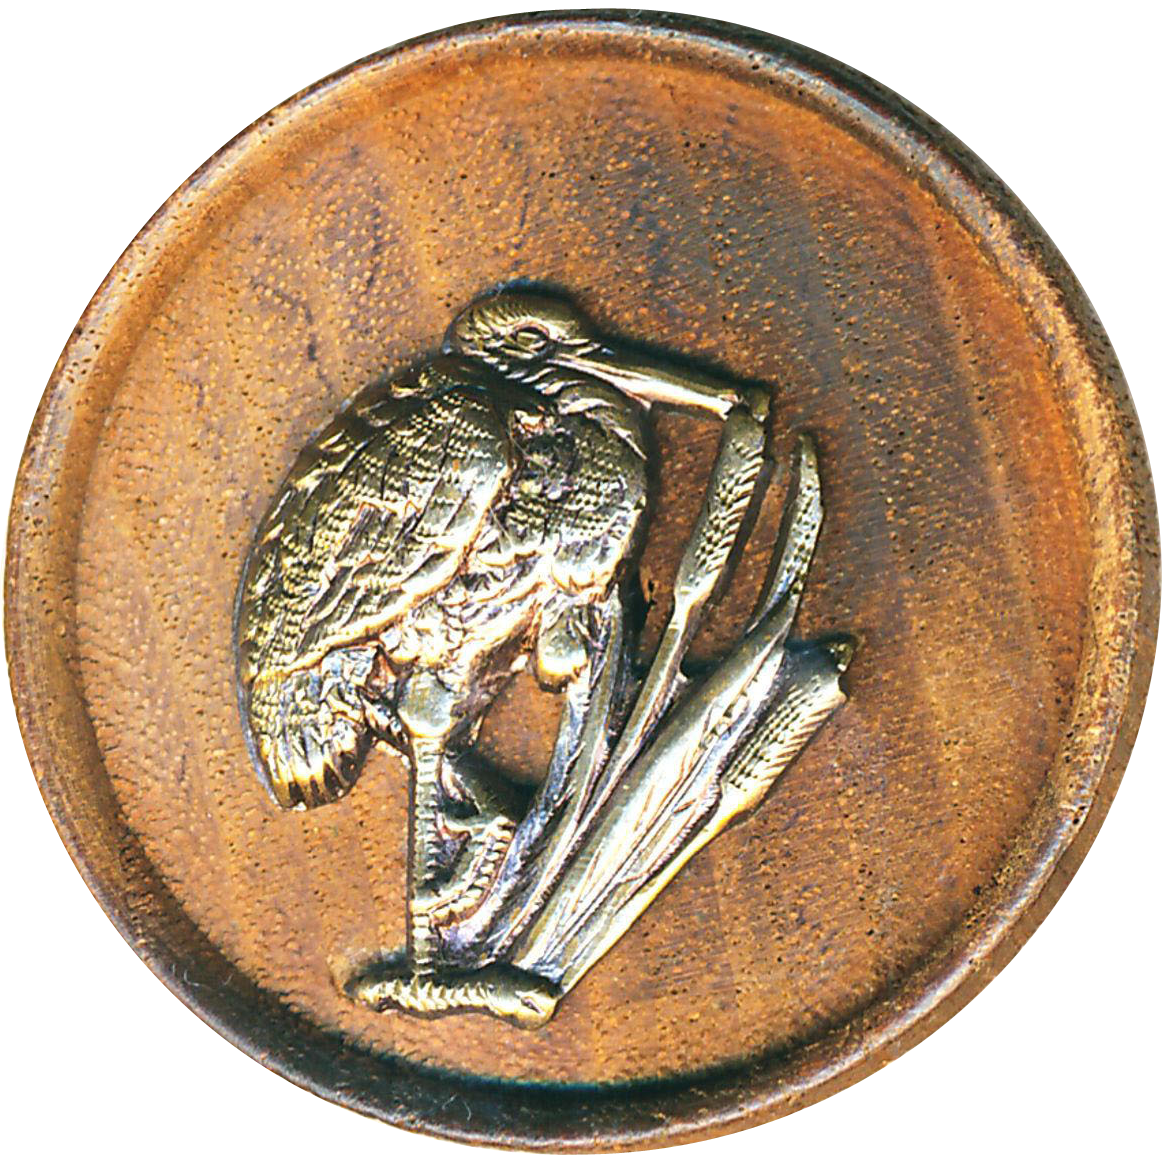 Button--Large Late 19th C. Thick Wood with Stork in Cat Tails Escutcheon